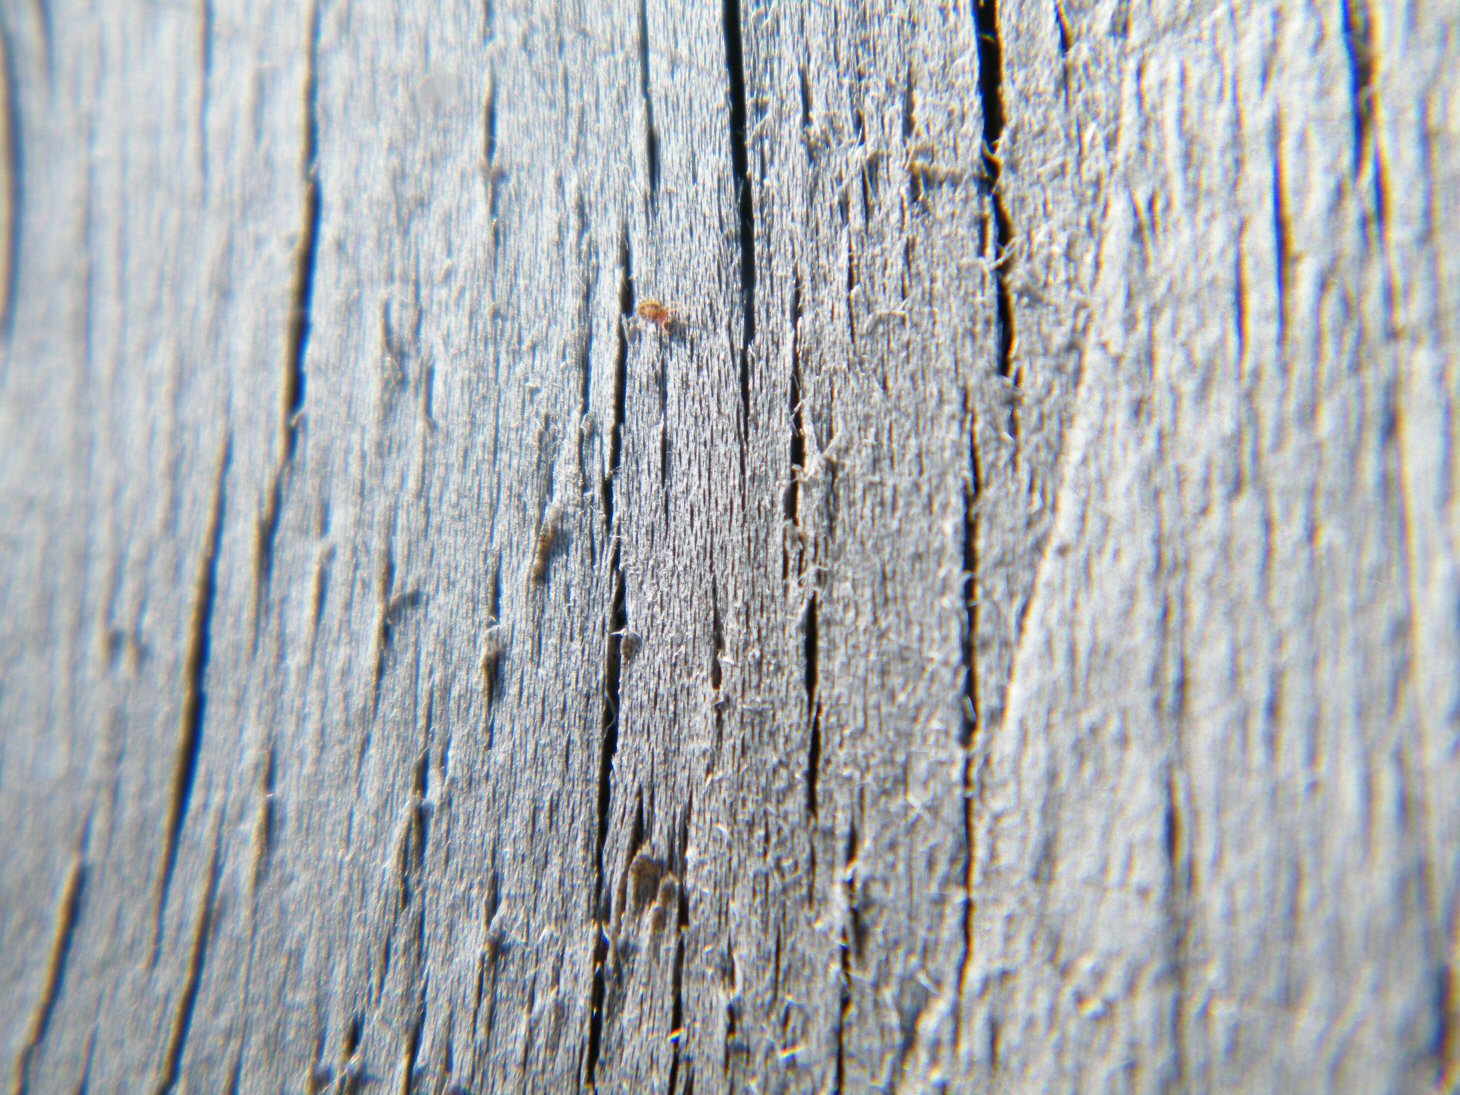 Macro Wooden Fence with Red Bug